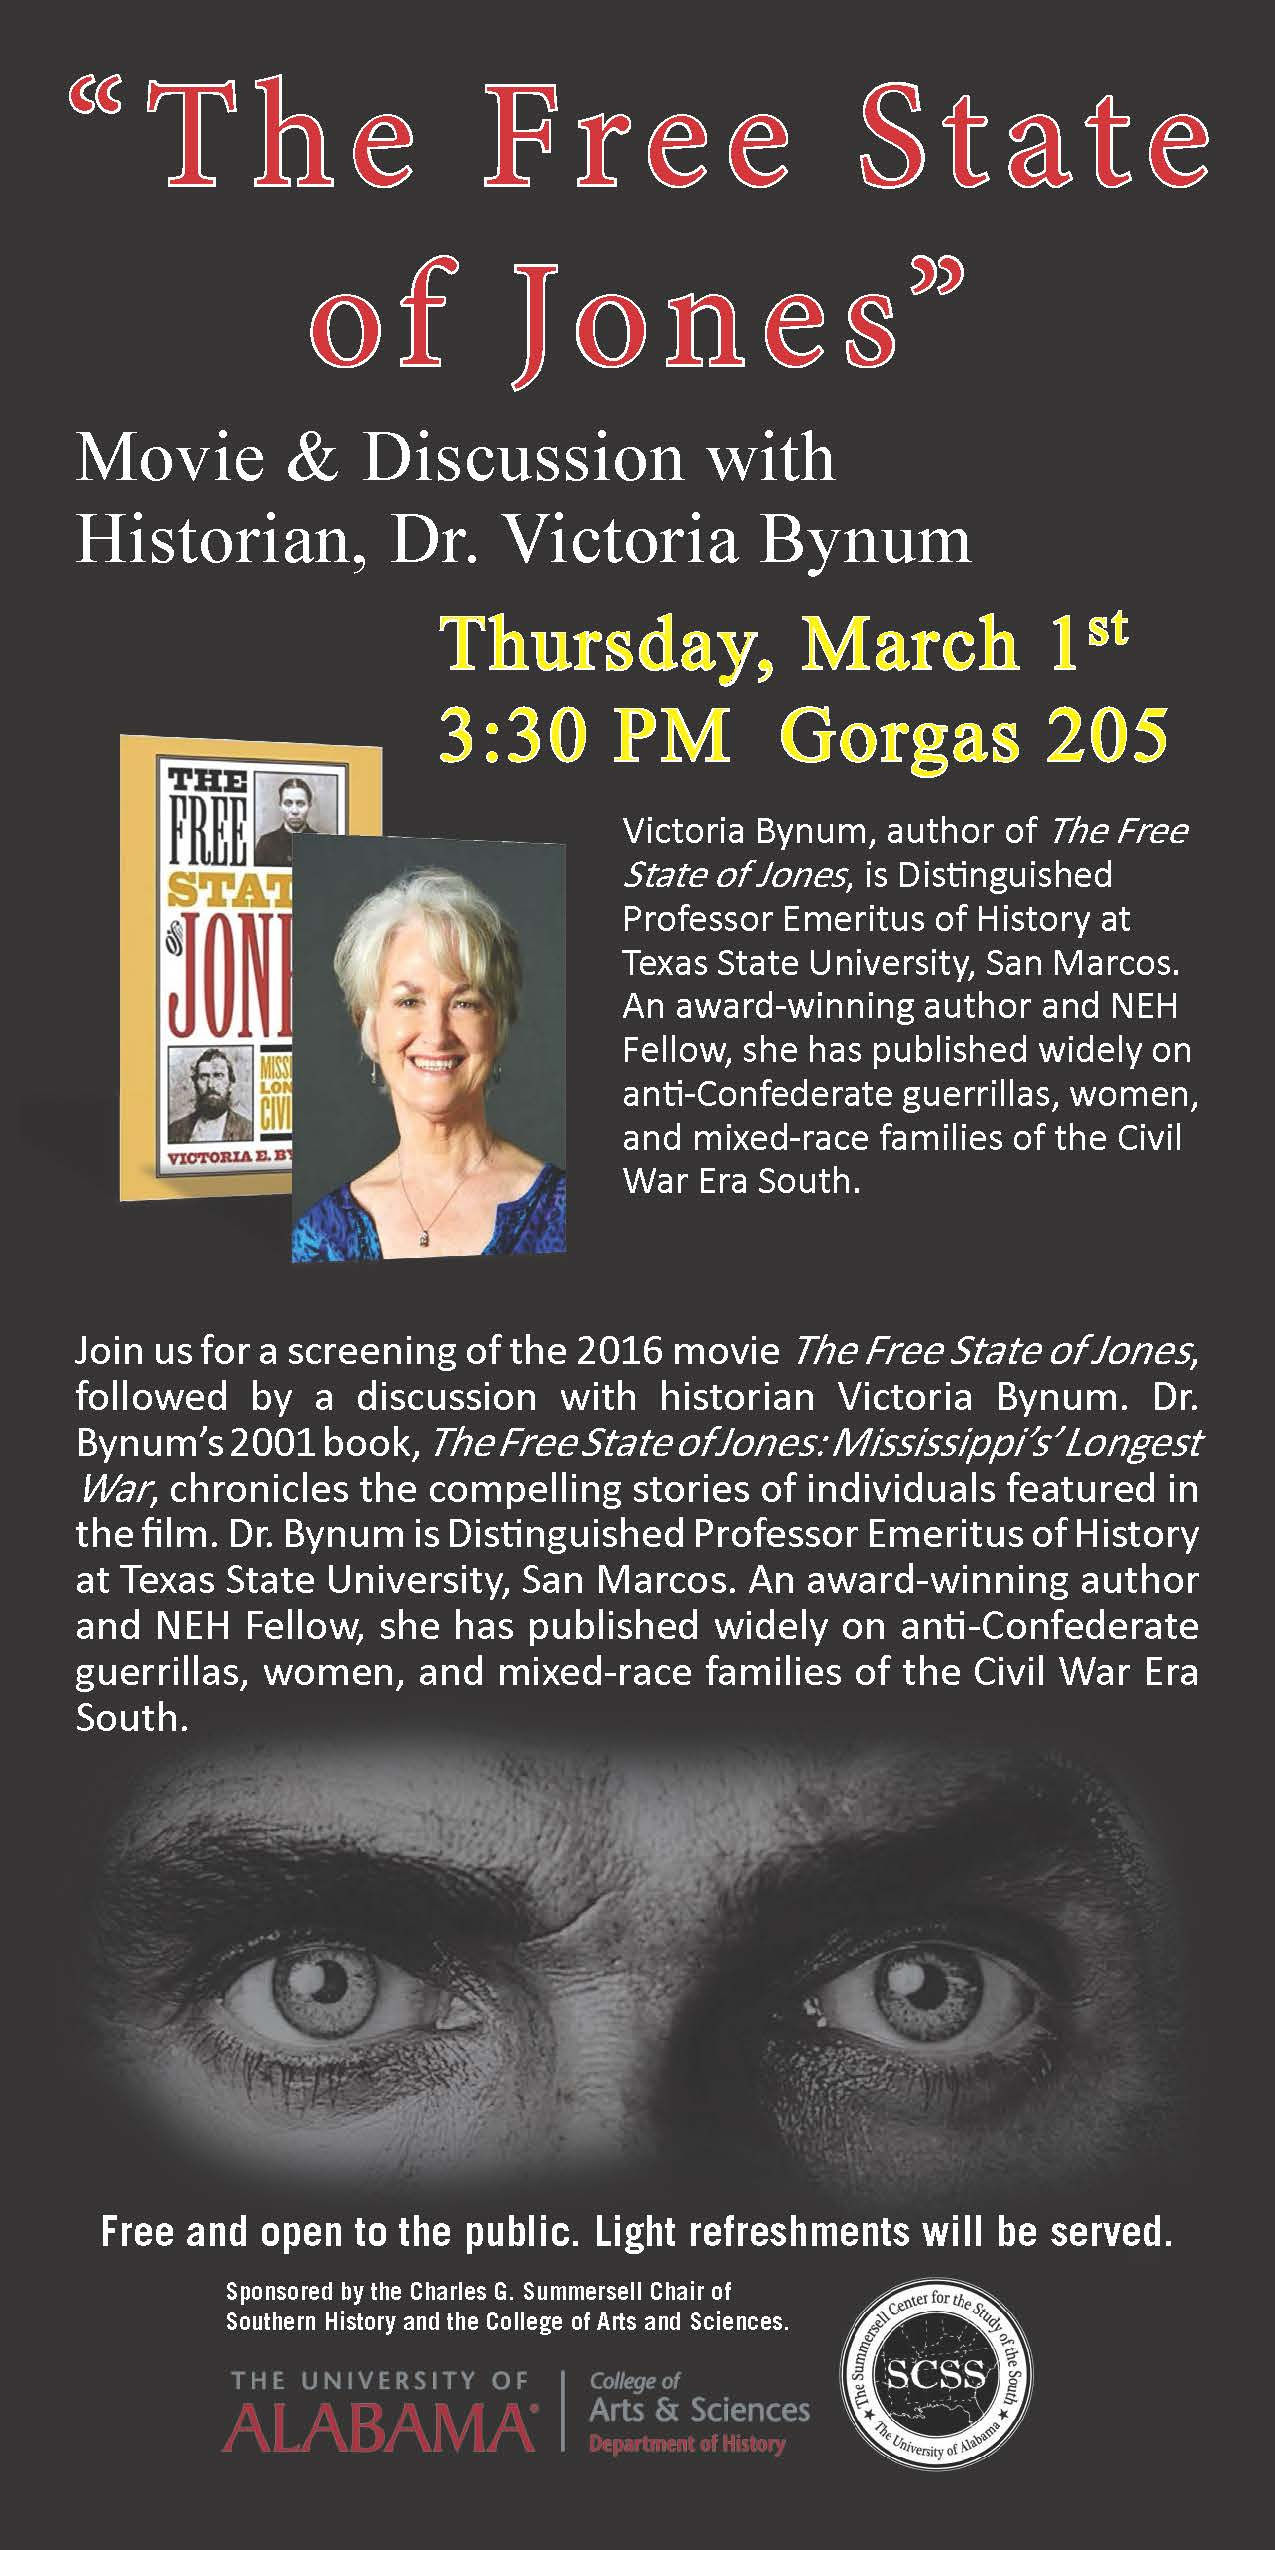 This image shows the event flyer for this screening.